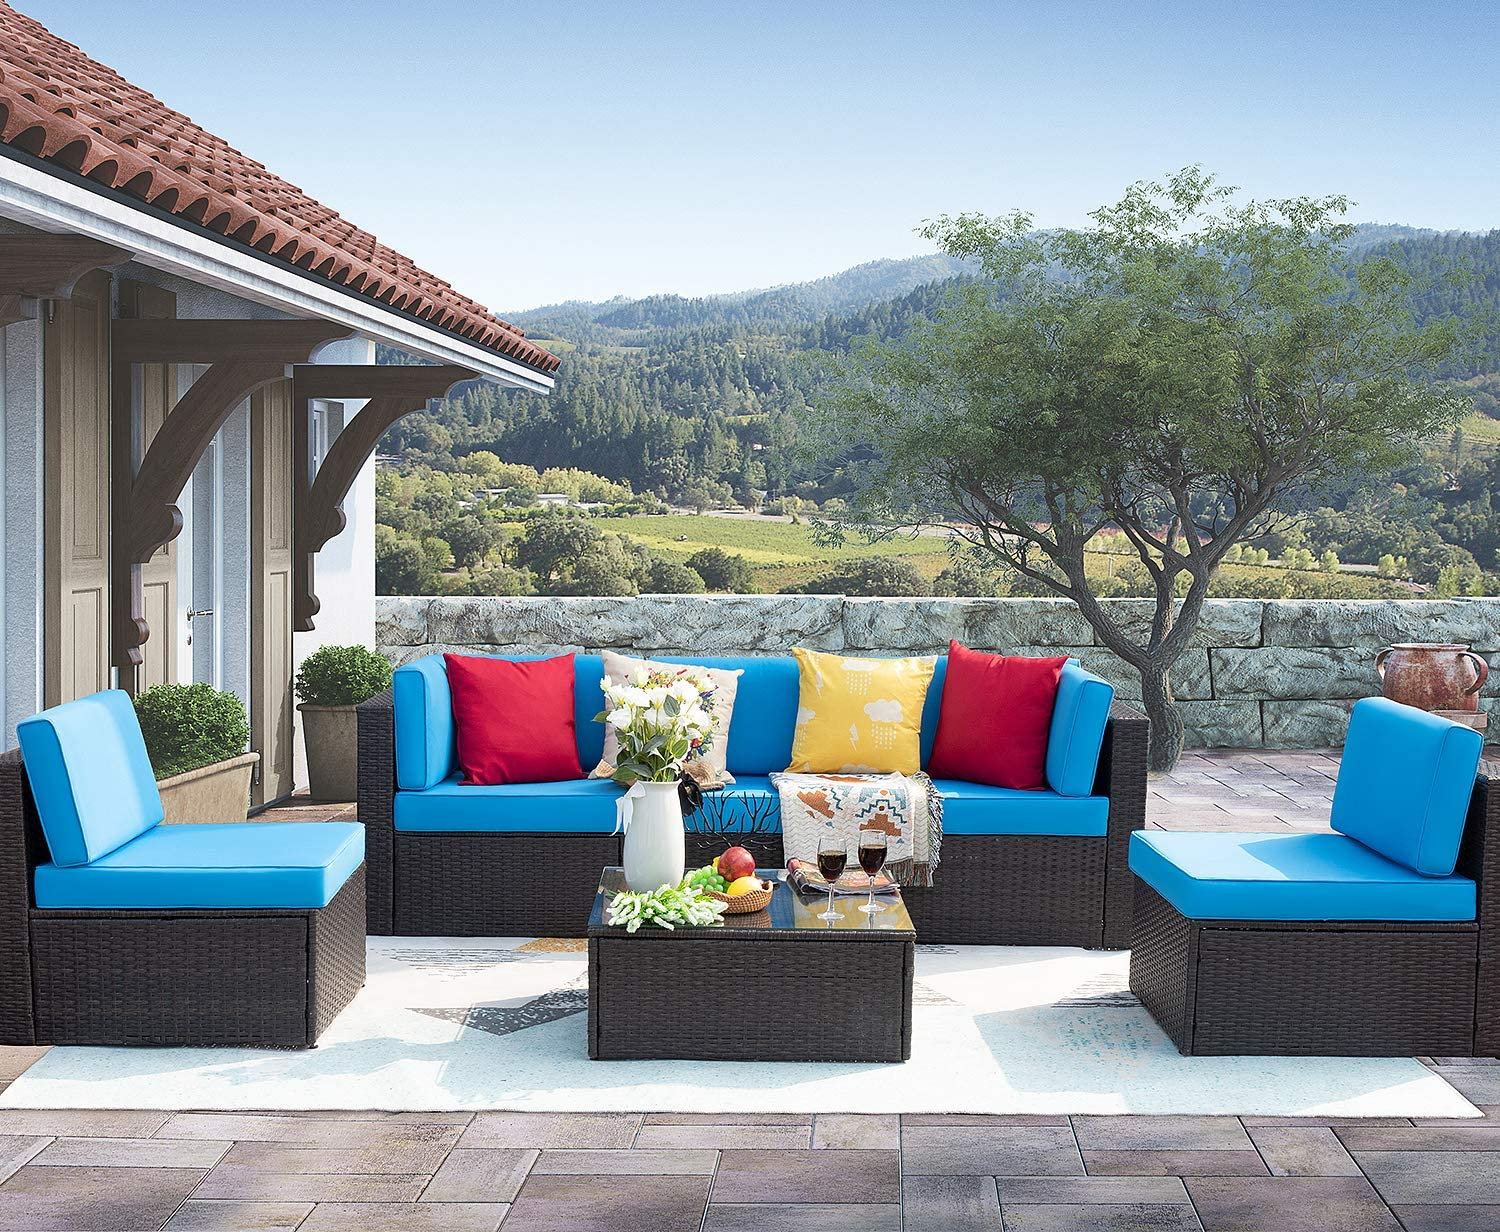 Homall 6 Pieces Patio Outdoor Furniture Sectional Sofa Set | Coffee Table and Washable Couch Cushions | Blue